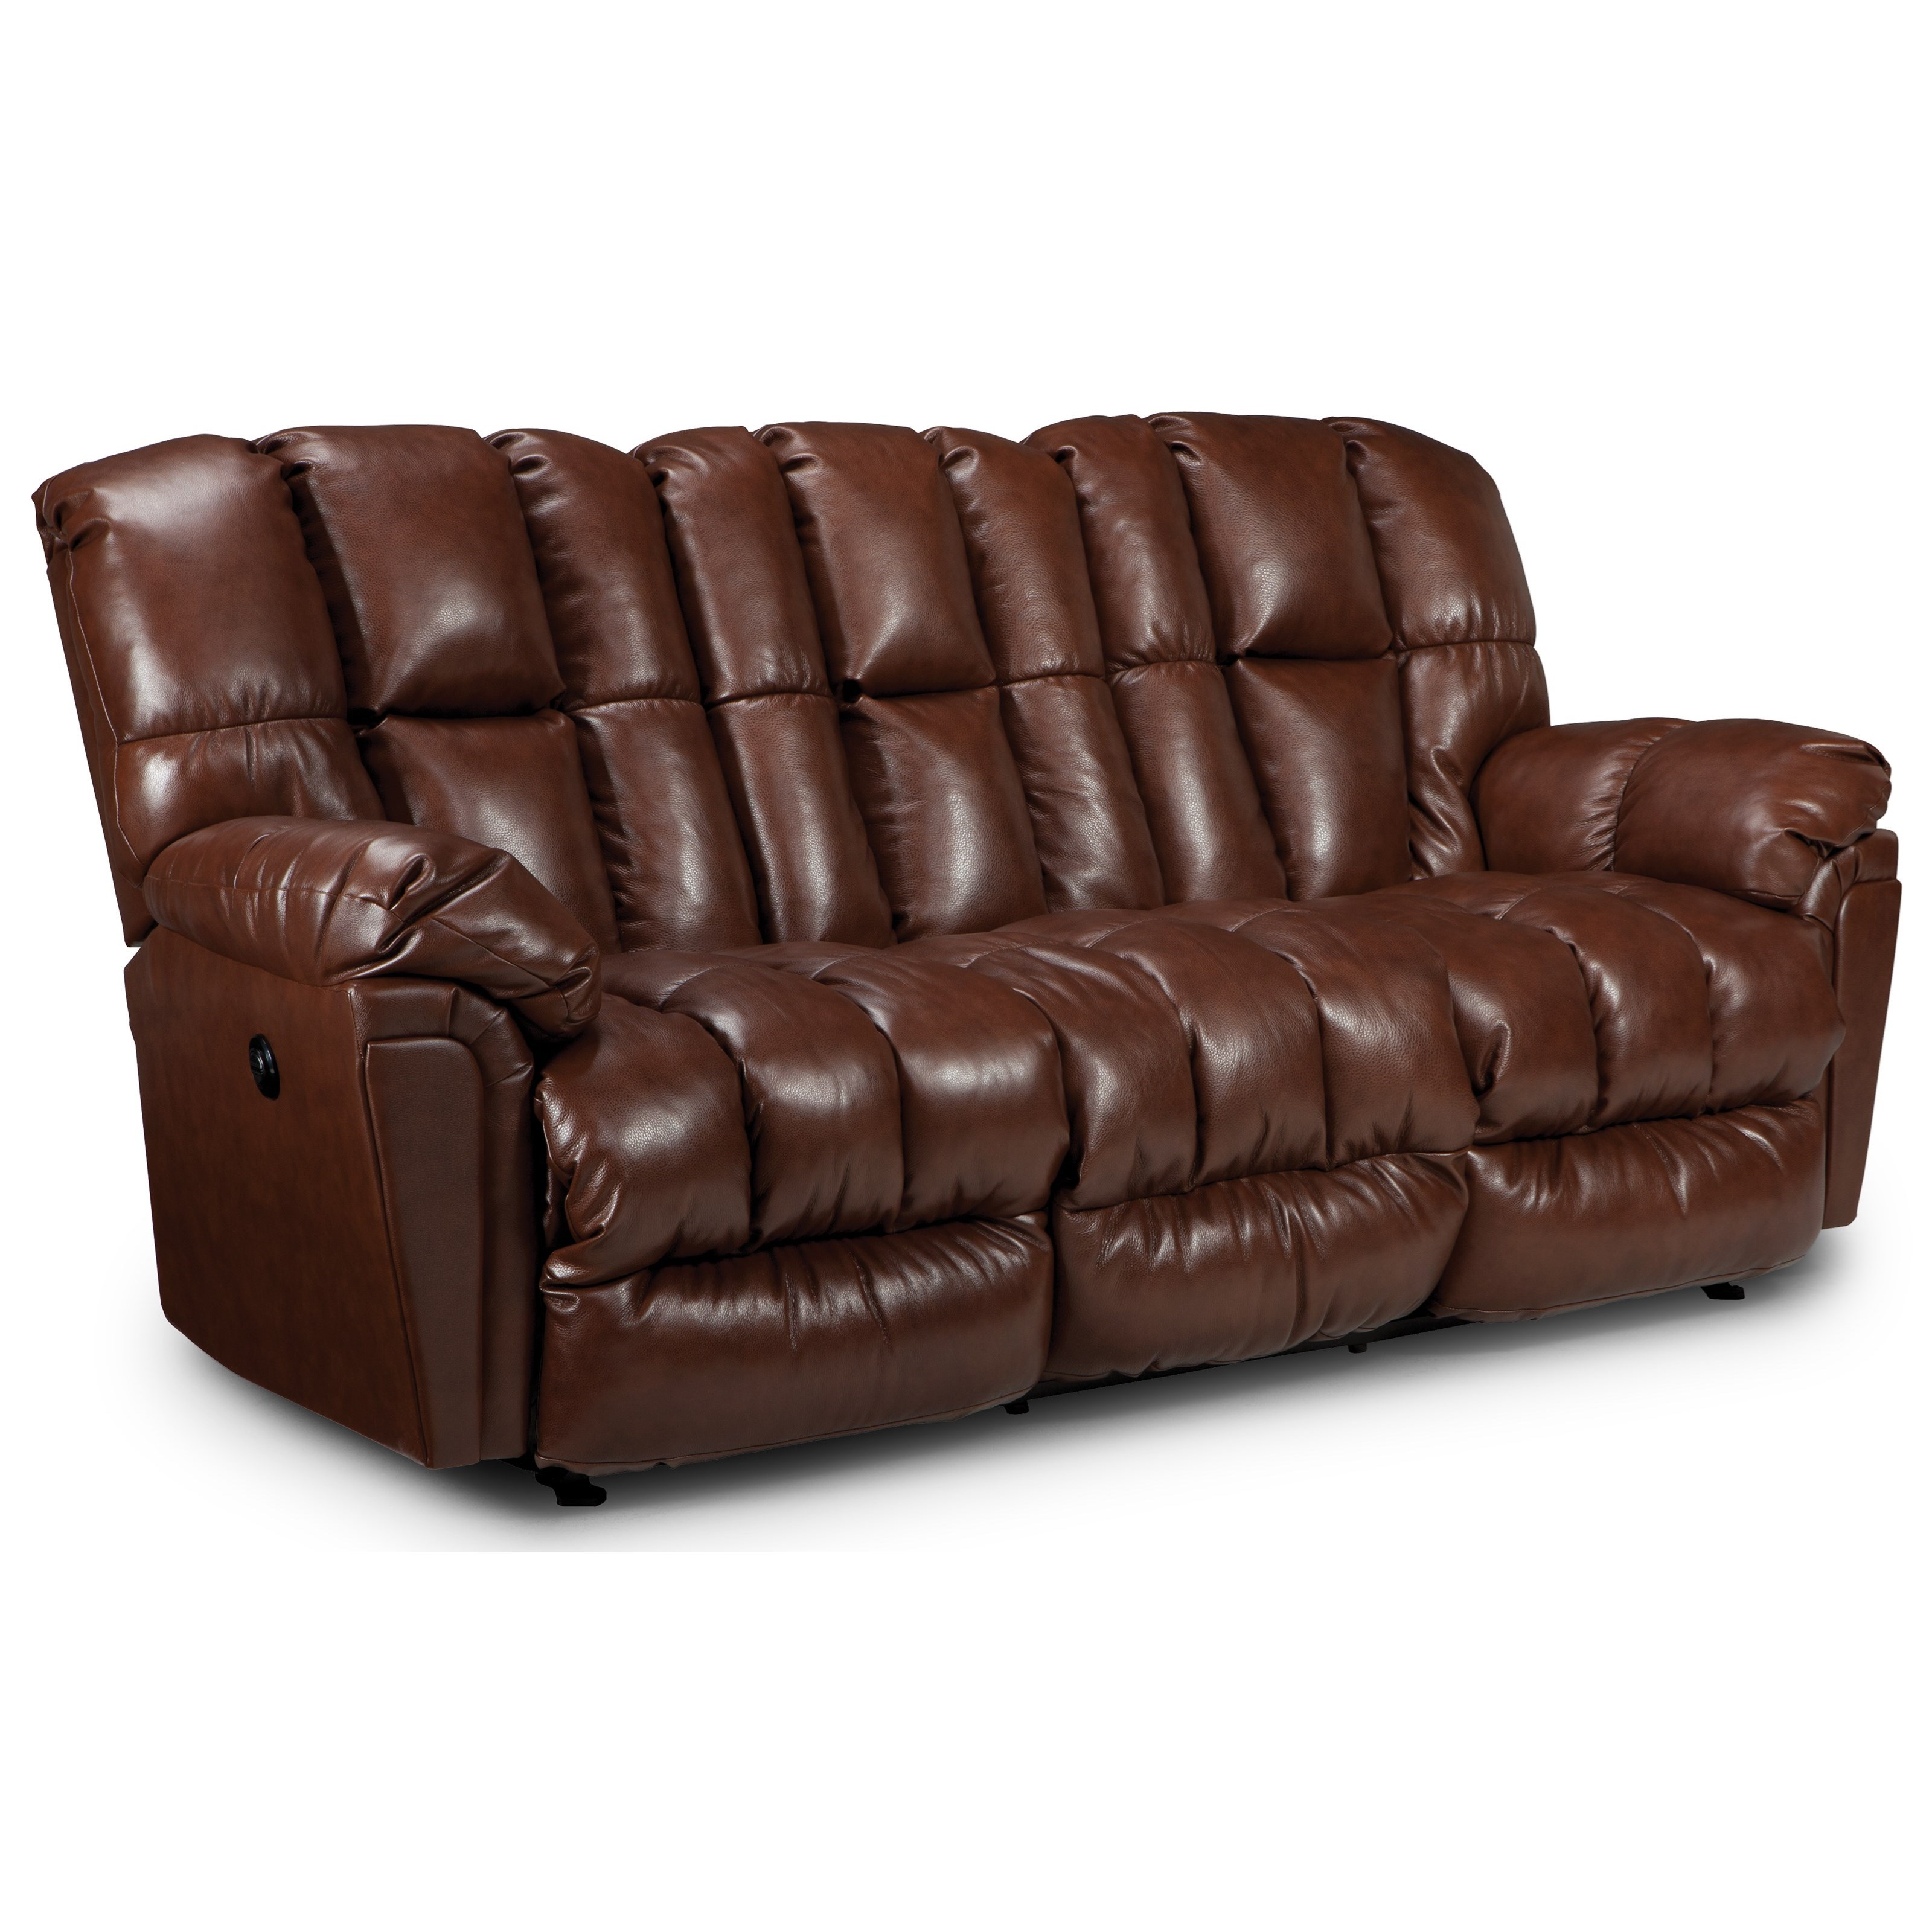 Best Home Furnishings Lucas Reclining Sofa - Item Number: S856CA4 01